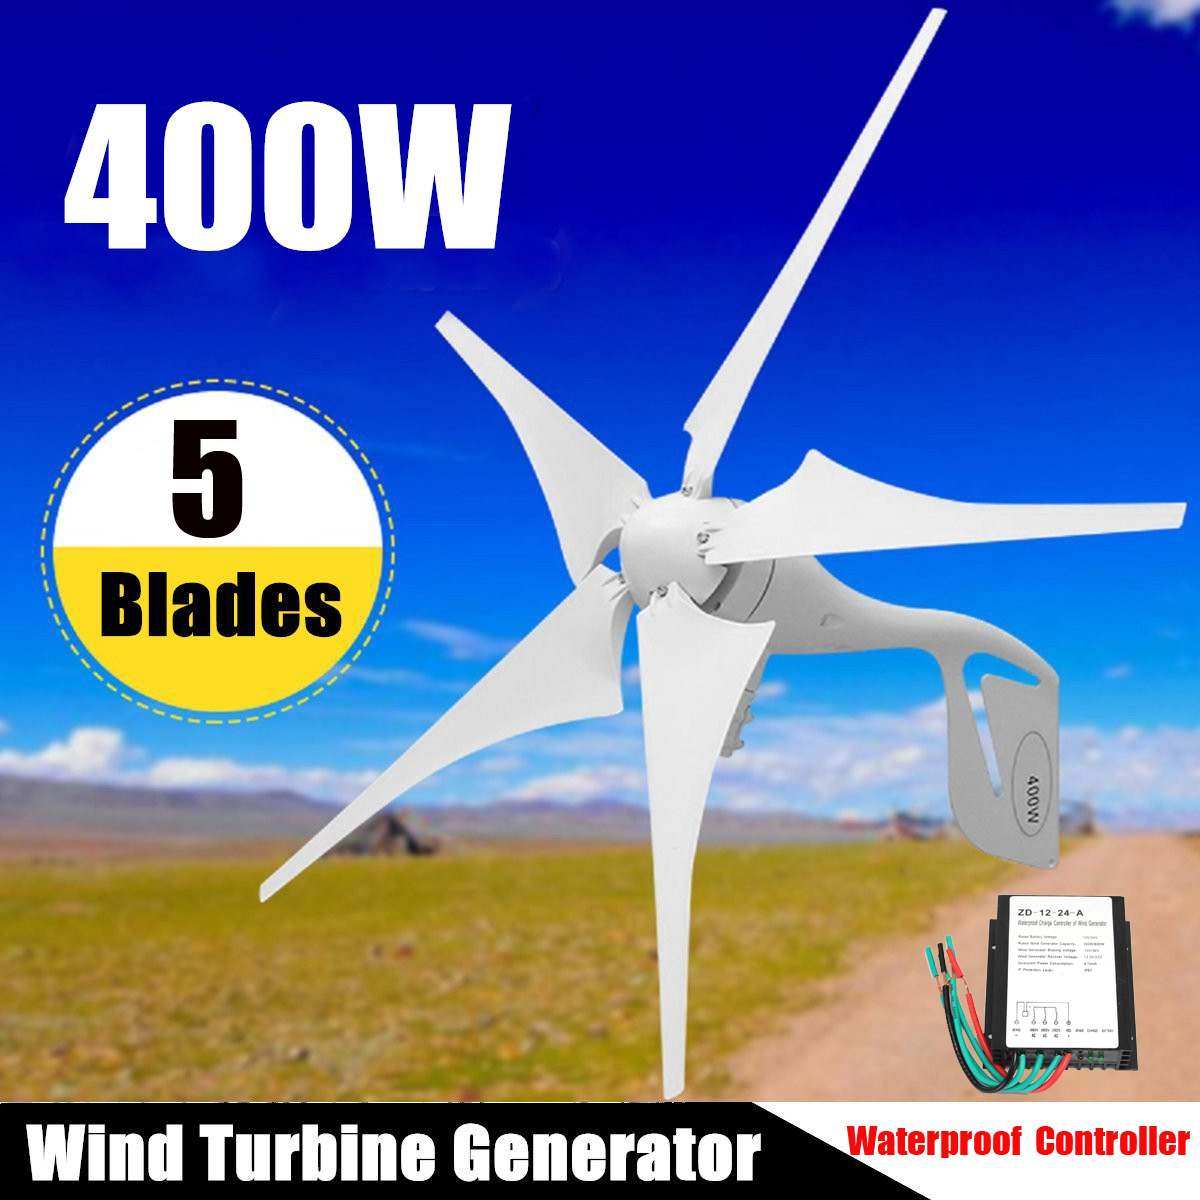 Wind Turbine 400W Wind Power Generator 5 Blades + DC 12V/24V Waterproof Charge Controller 300/600W Wind Energy Turbine GeneratorWind Turbine 400W Wind Power Generator 5 Blades + DC 12V/24V Waterproof Charge Controller 300/600W Wind Energy Turbine Generator